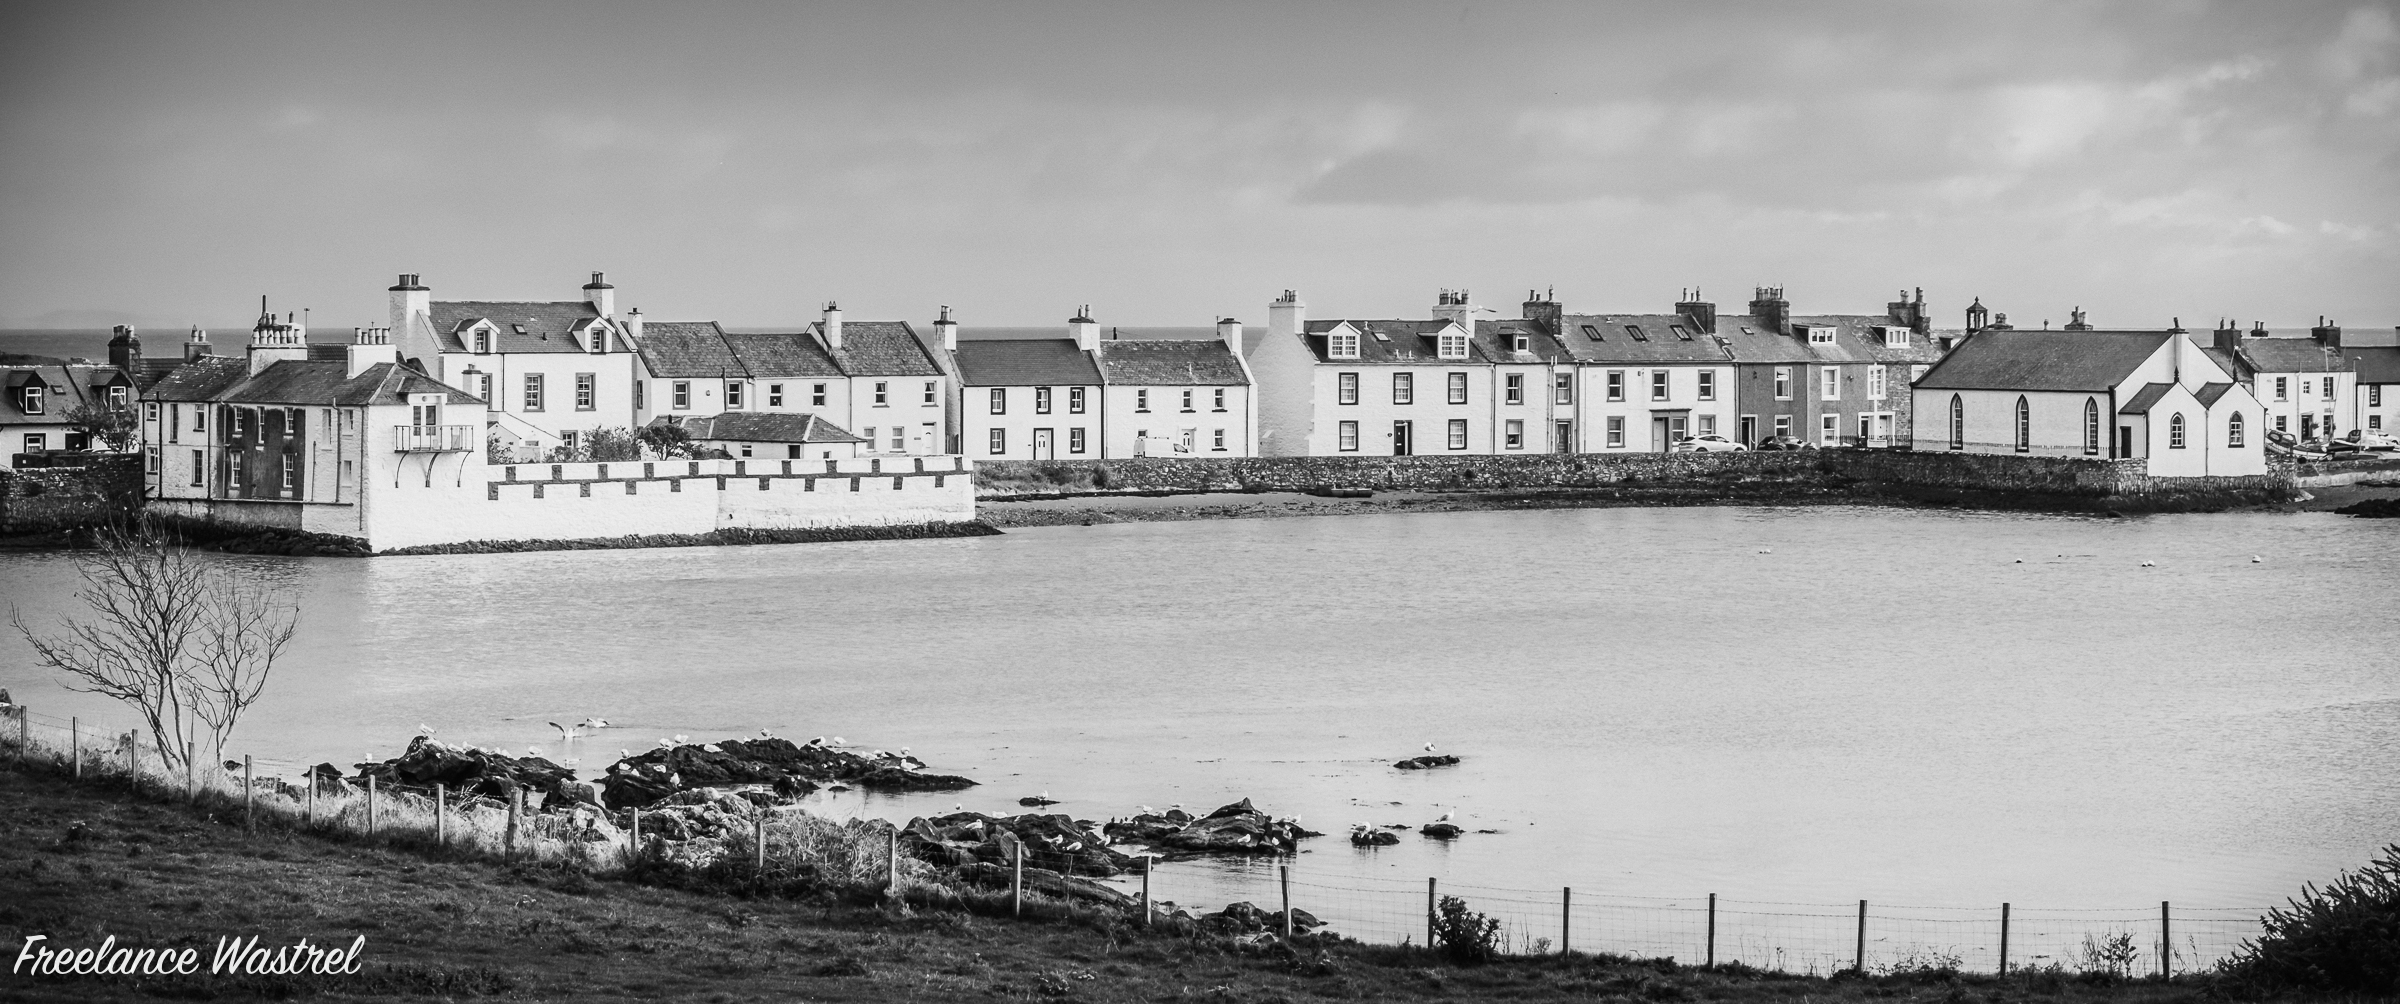 Isle of Whithorn, October 2019